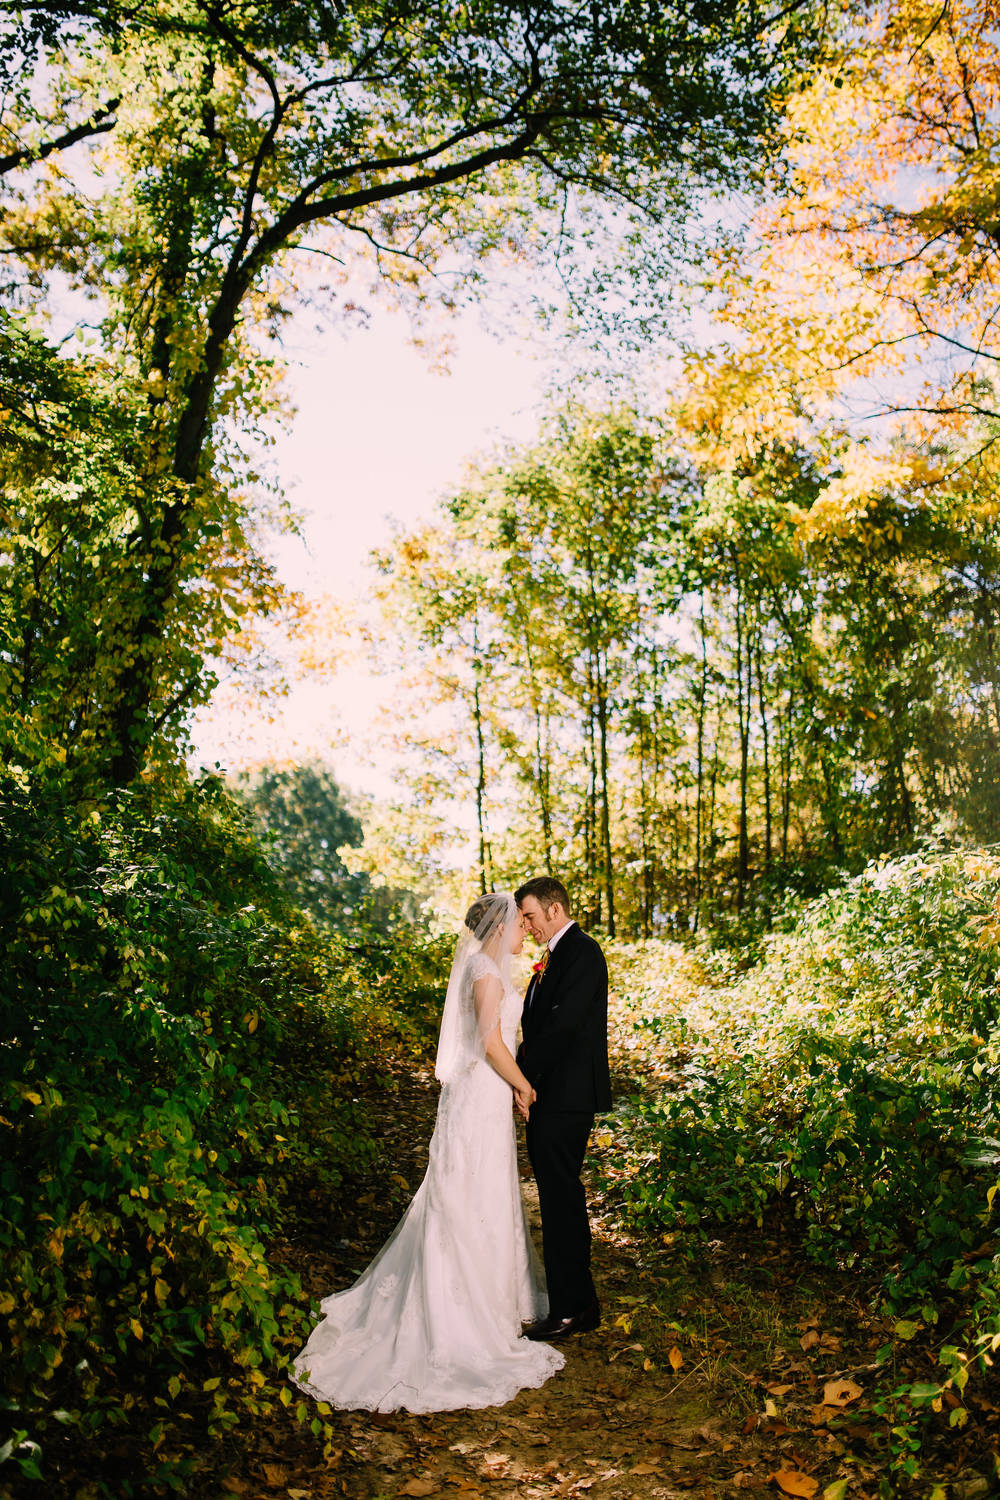 Beautiful bride and groom portraits at Wildwood Metropark